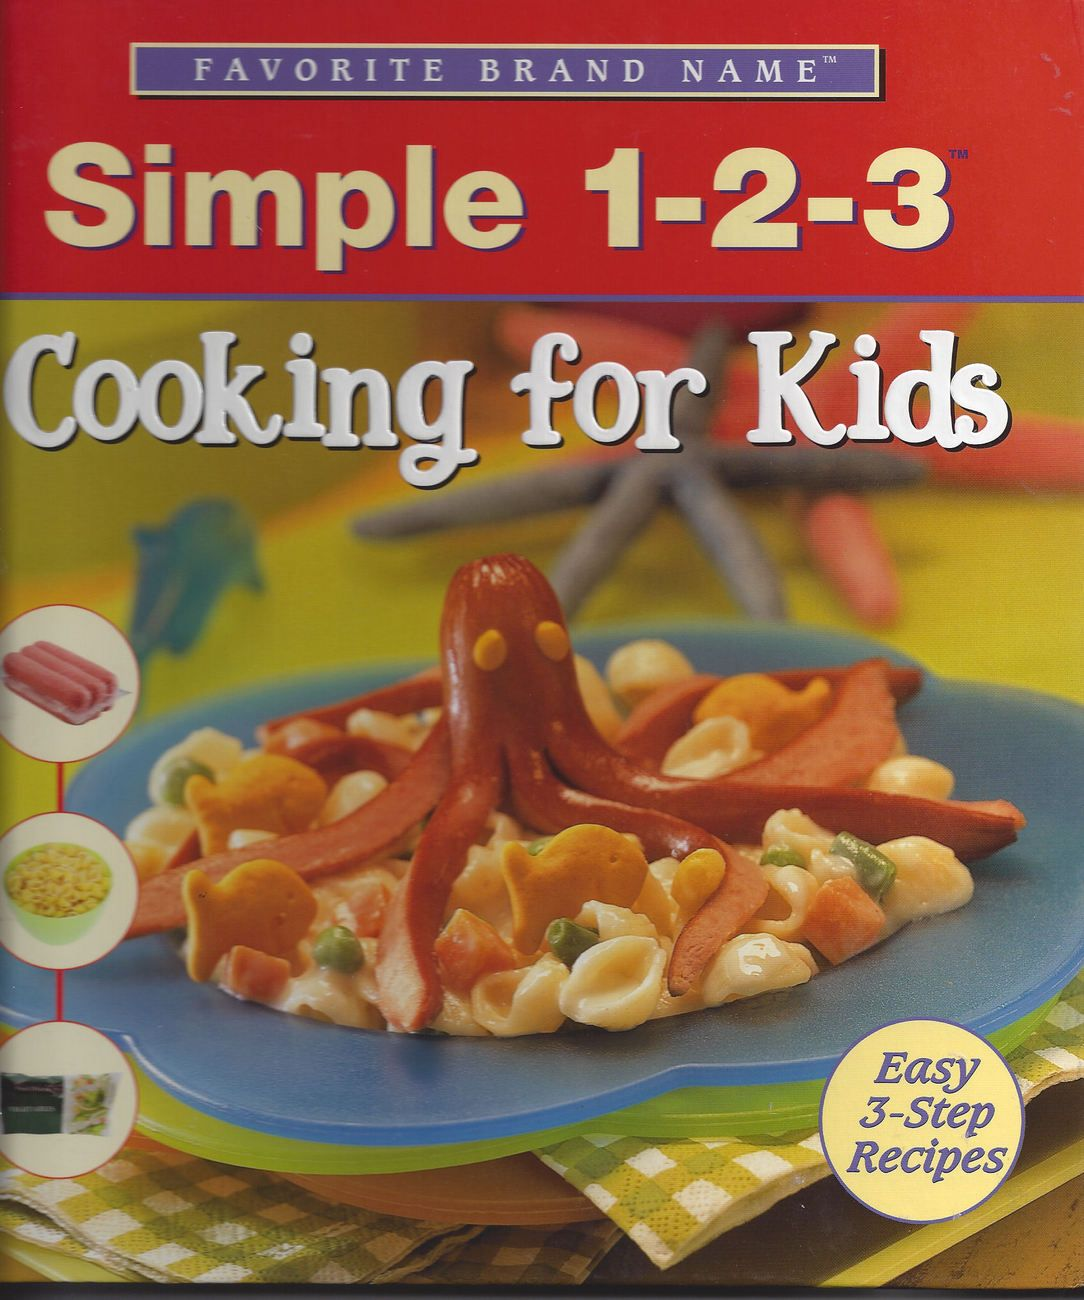 Favorite Brand Name Simple 1 2 3 Cooking For Kids Cookbook Cooking With Kids Kids Cookbook Kids Cooking Recipes